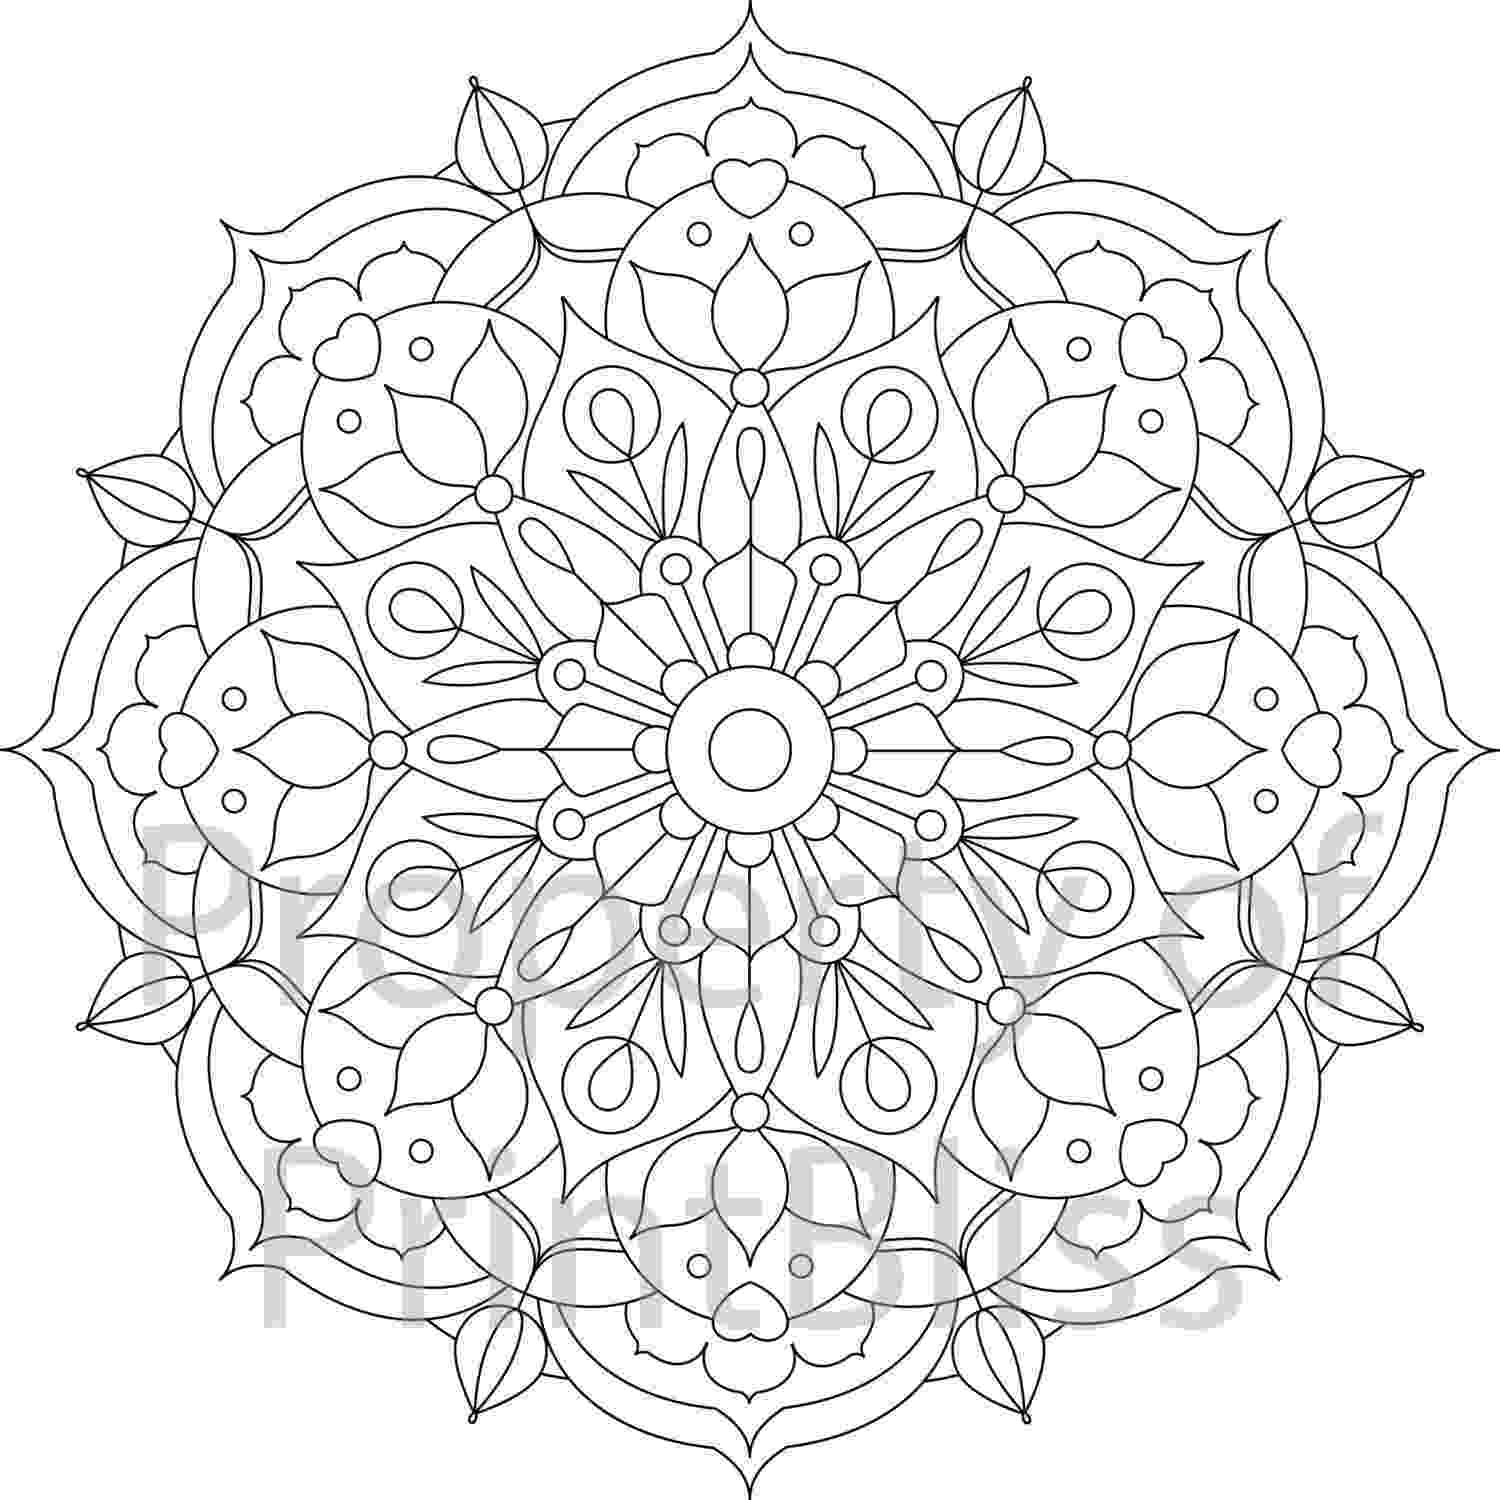 coloring pages mandalas beautiful free mandala coloring pages skip to my lou mandalas coloring pages 1 1